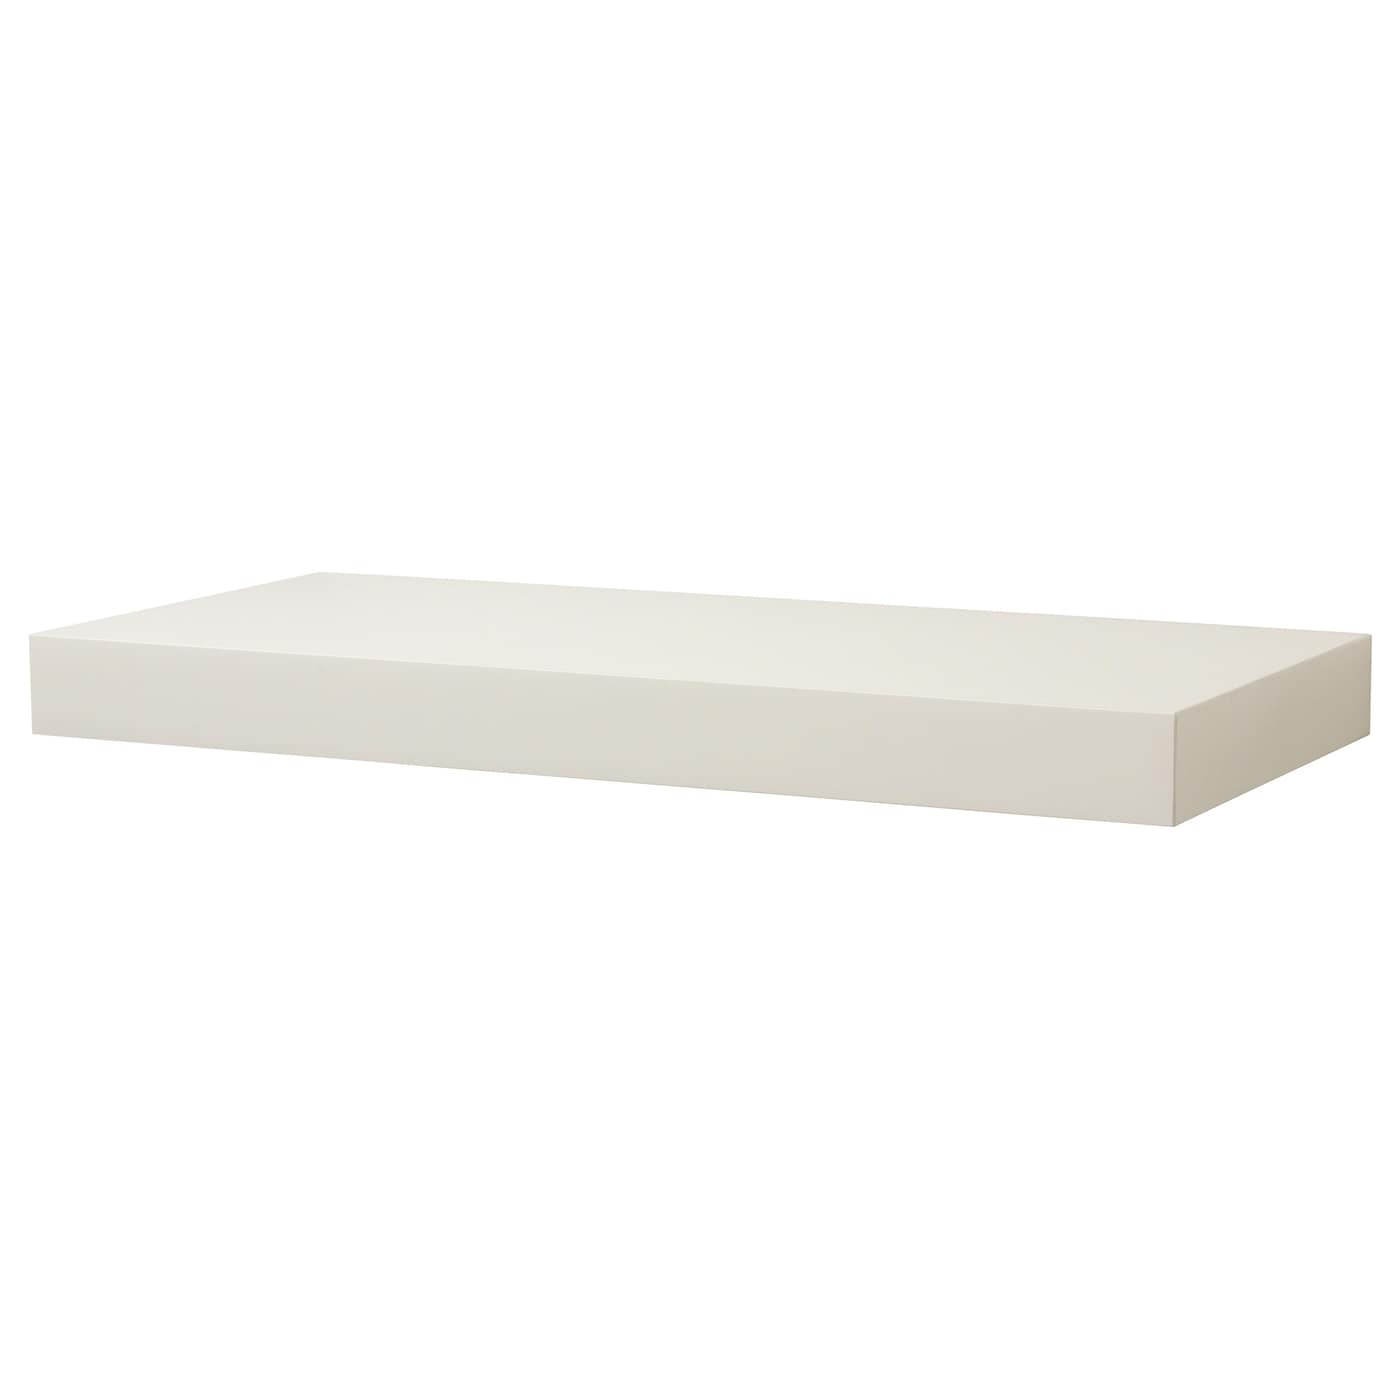 persby wall shelf white 59x26 cm ikea. Black Bedroom Furniture Sets. Home Design Ideas